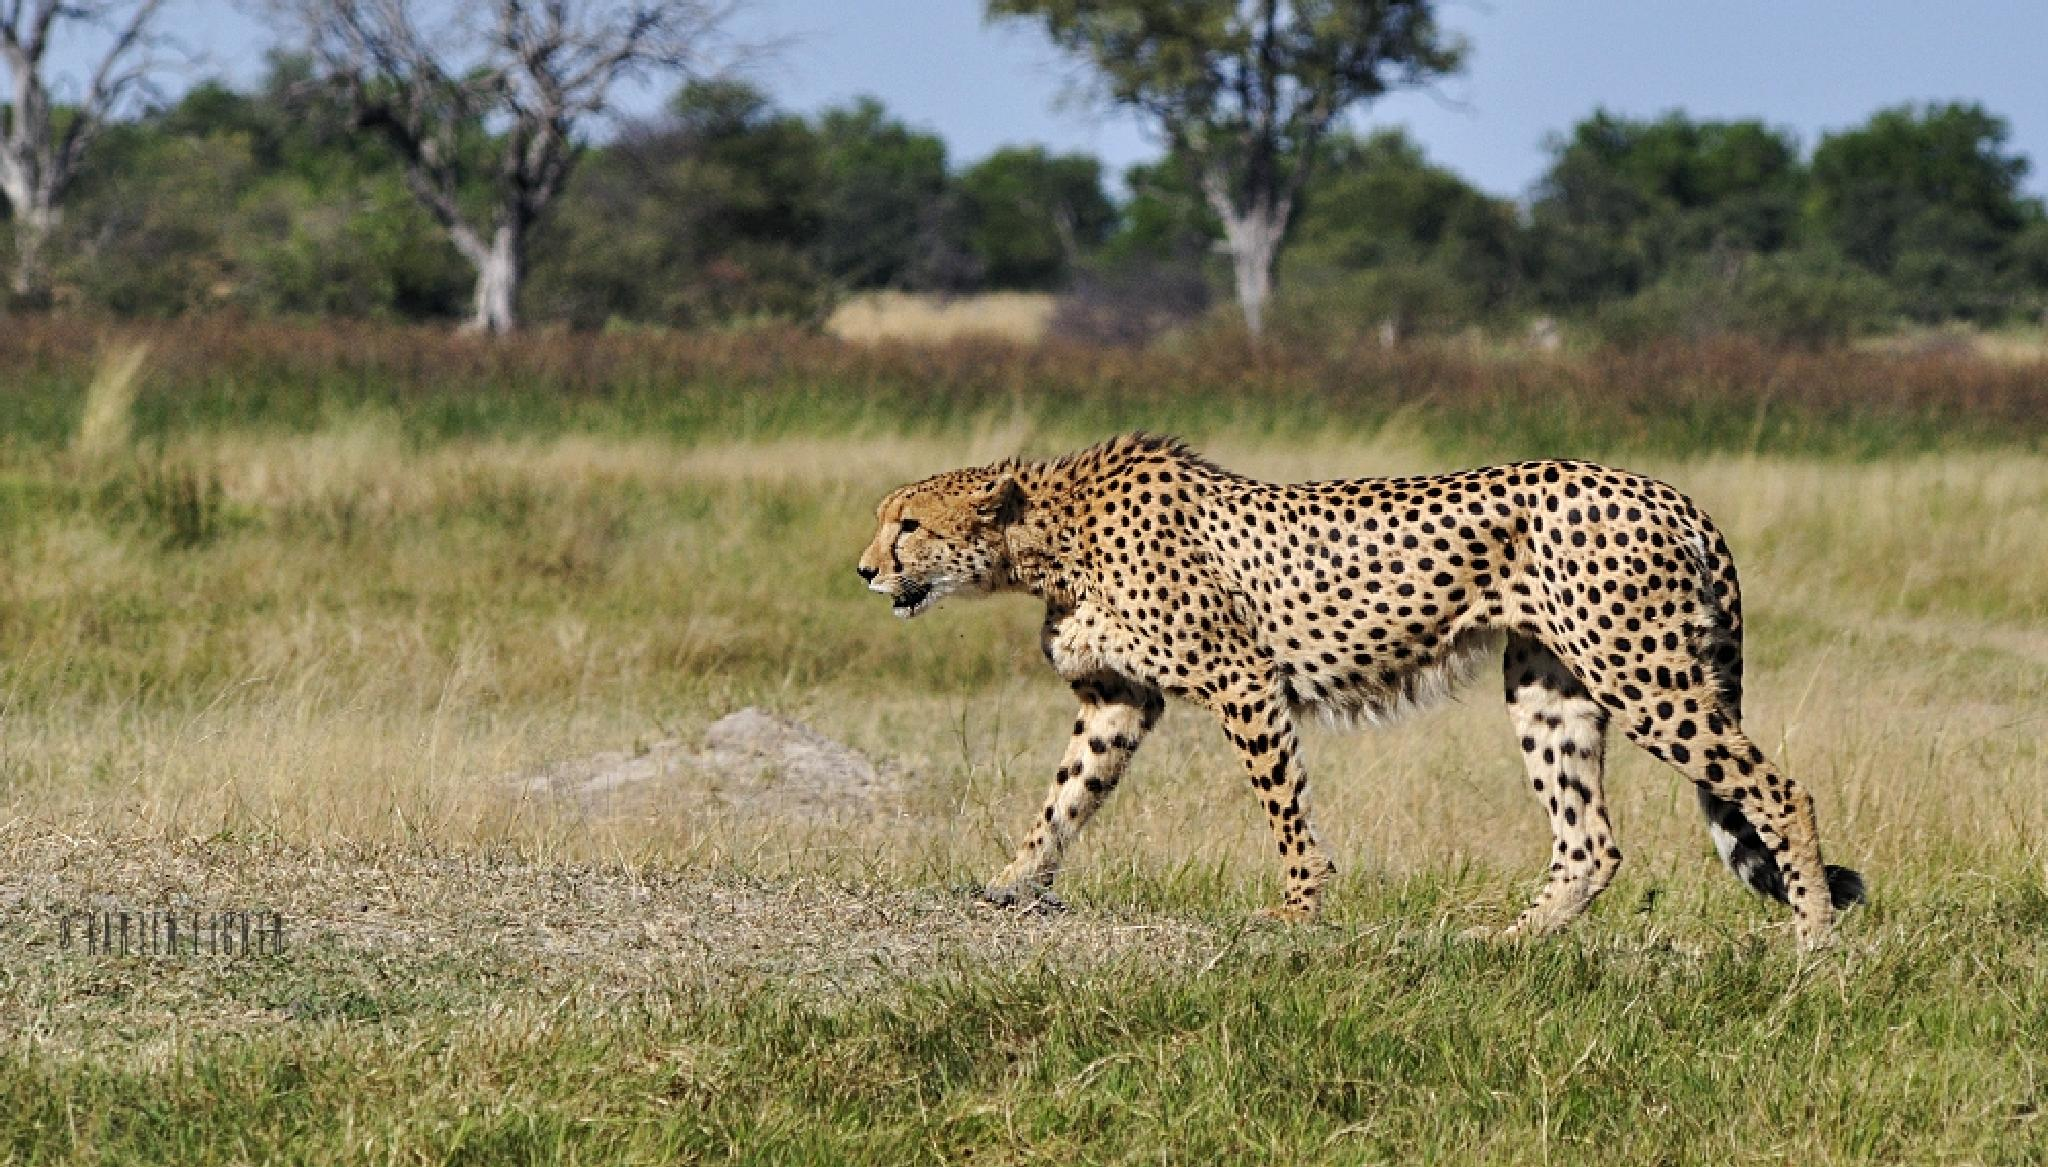 Male cheetah on the prowl by Karien Eigner